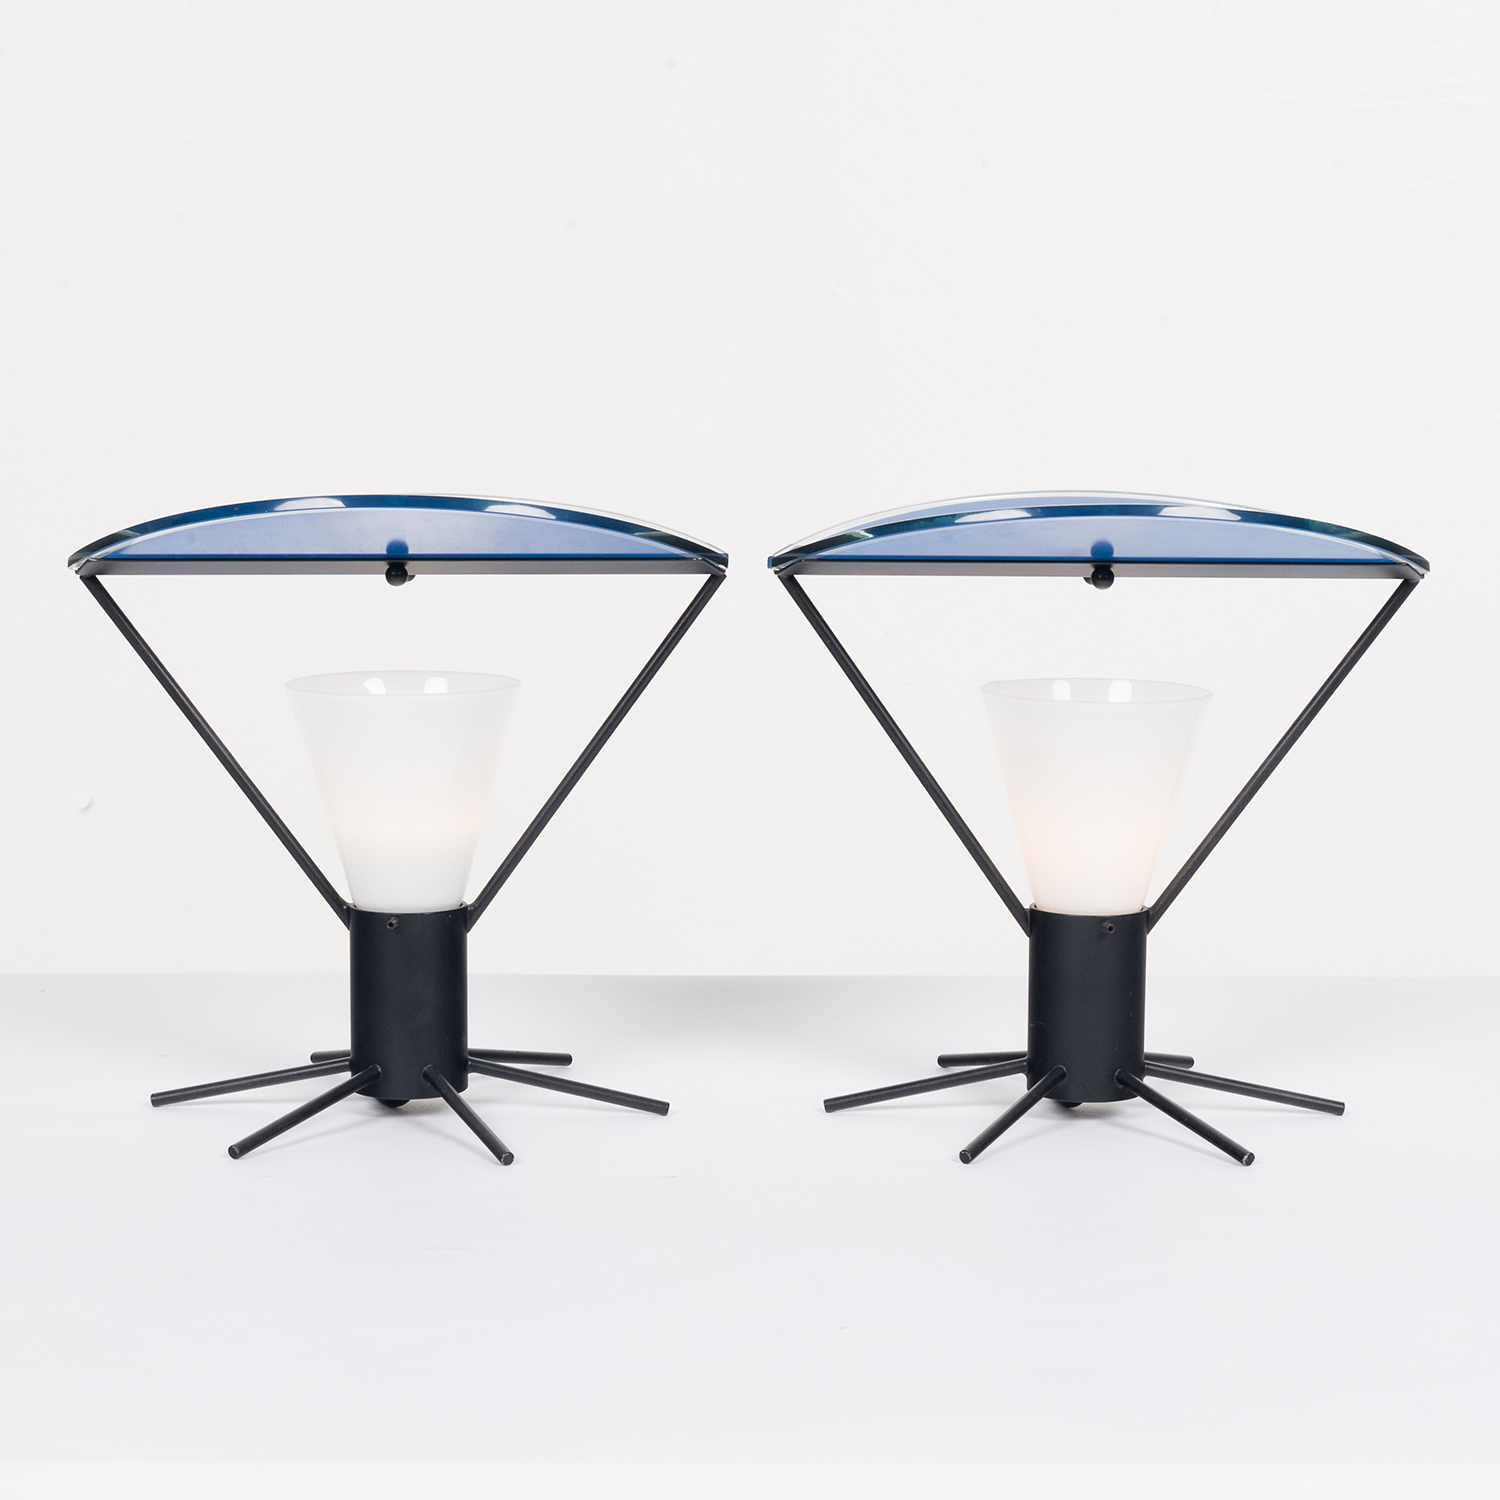 Pair Of Memphis Style Table Lamps In Murano Glass, 1980s, Italy 24